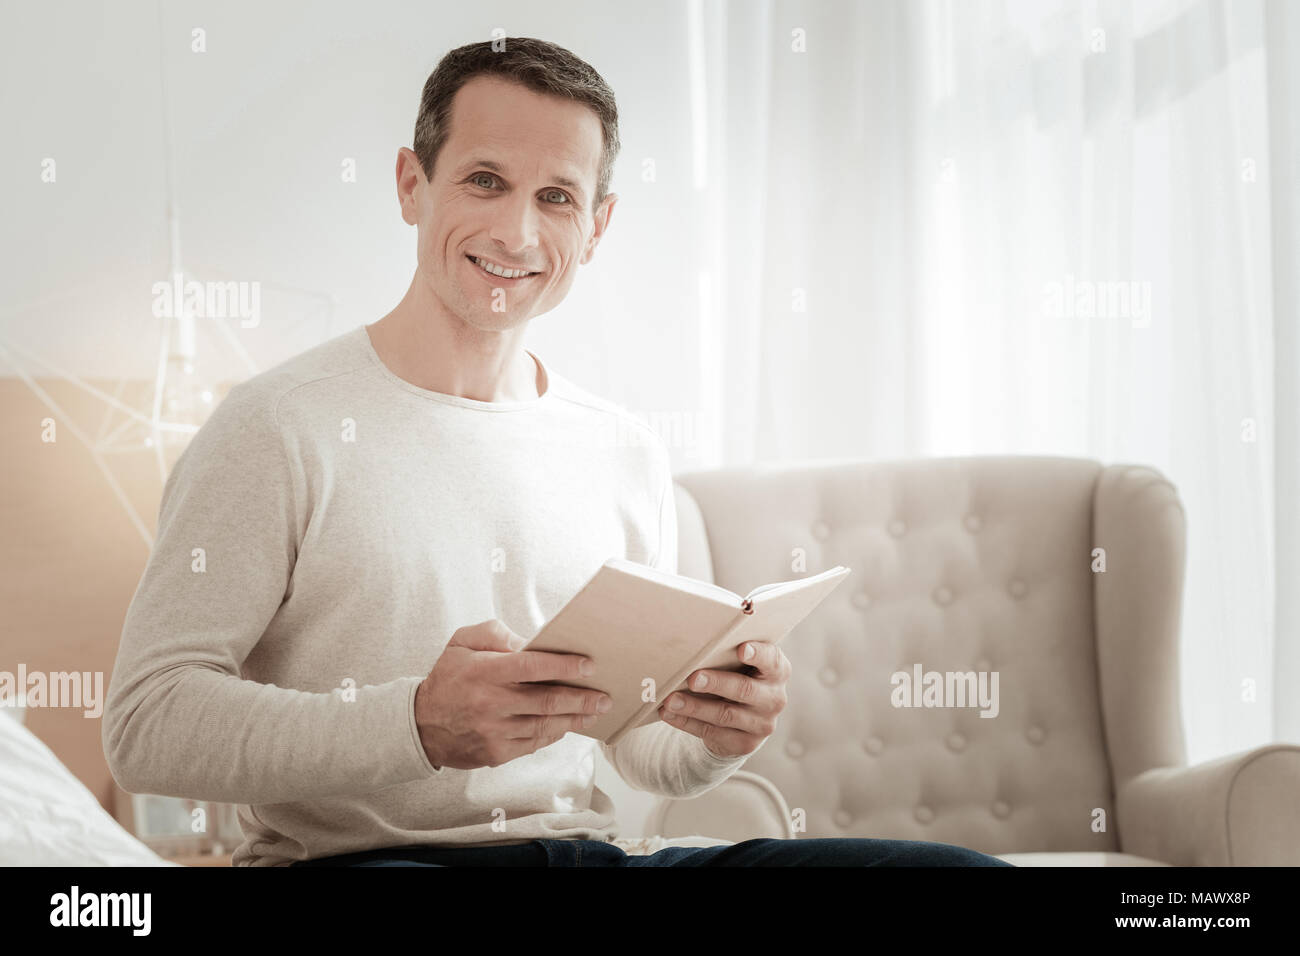 Satisfied smart man holding a book and smiling. Stock Photo